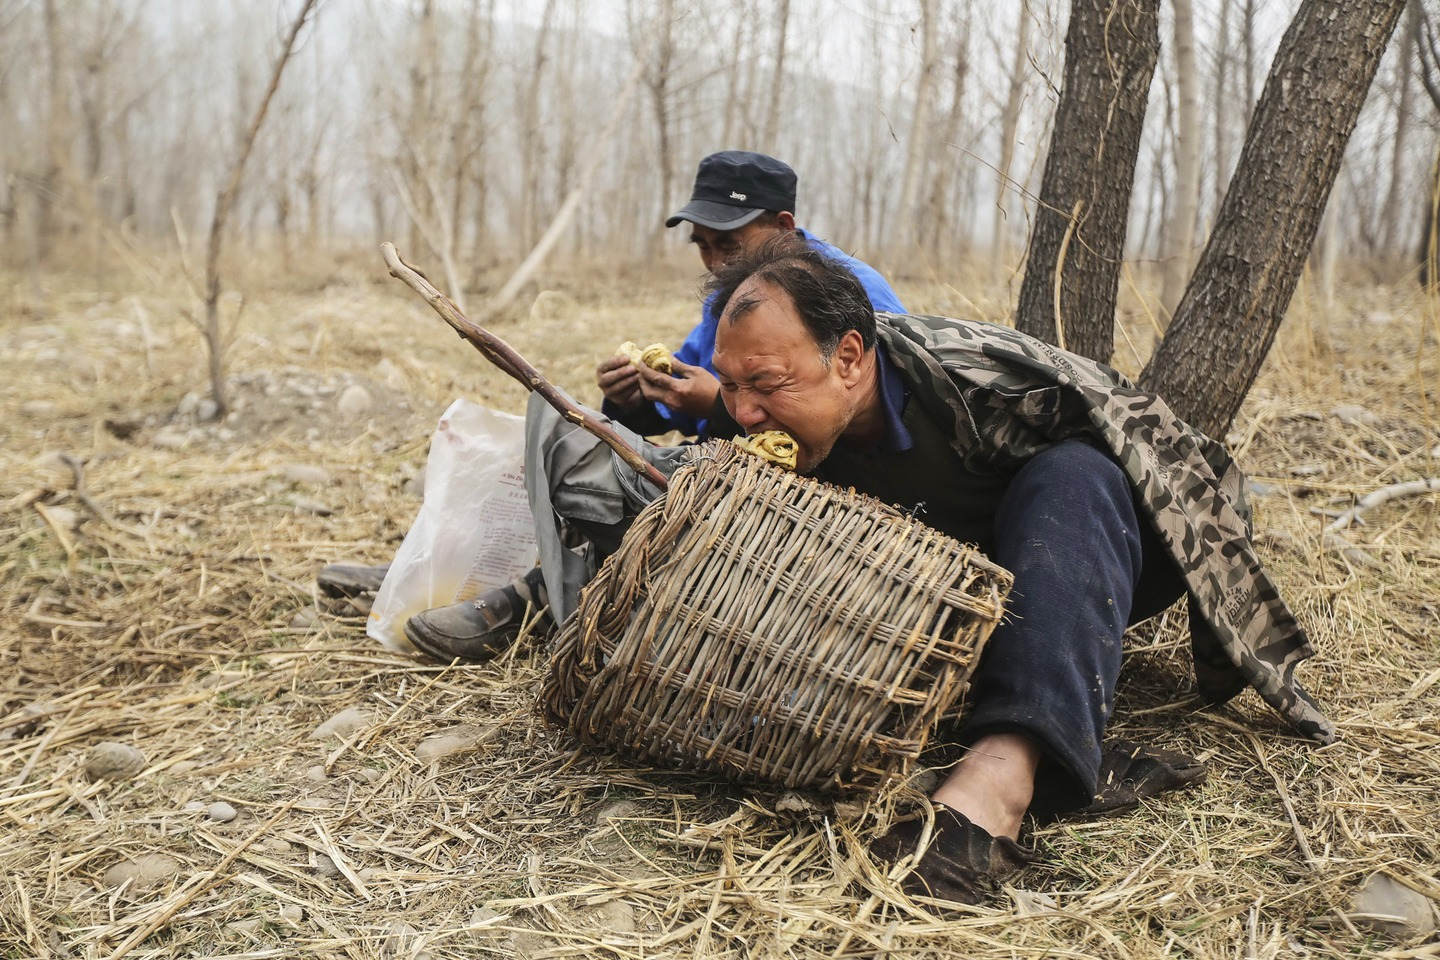 Jia Wenqi and Jia Haixia eat food during a break from their tree planting.